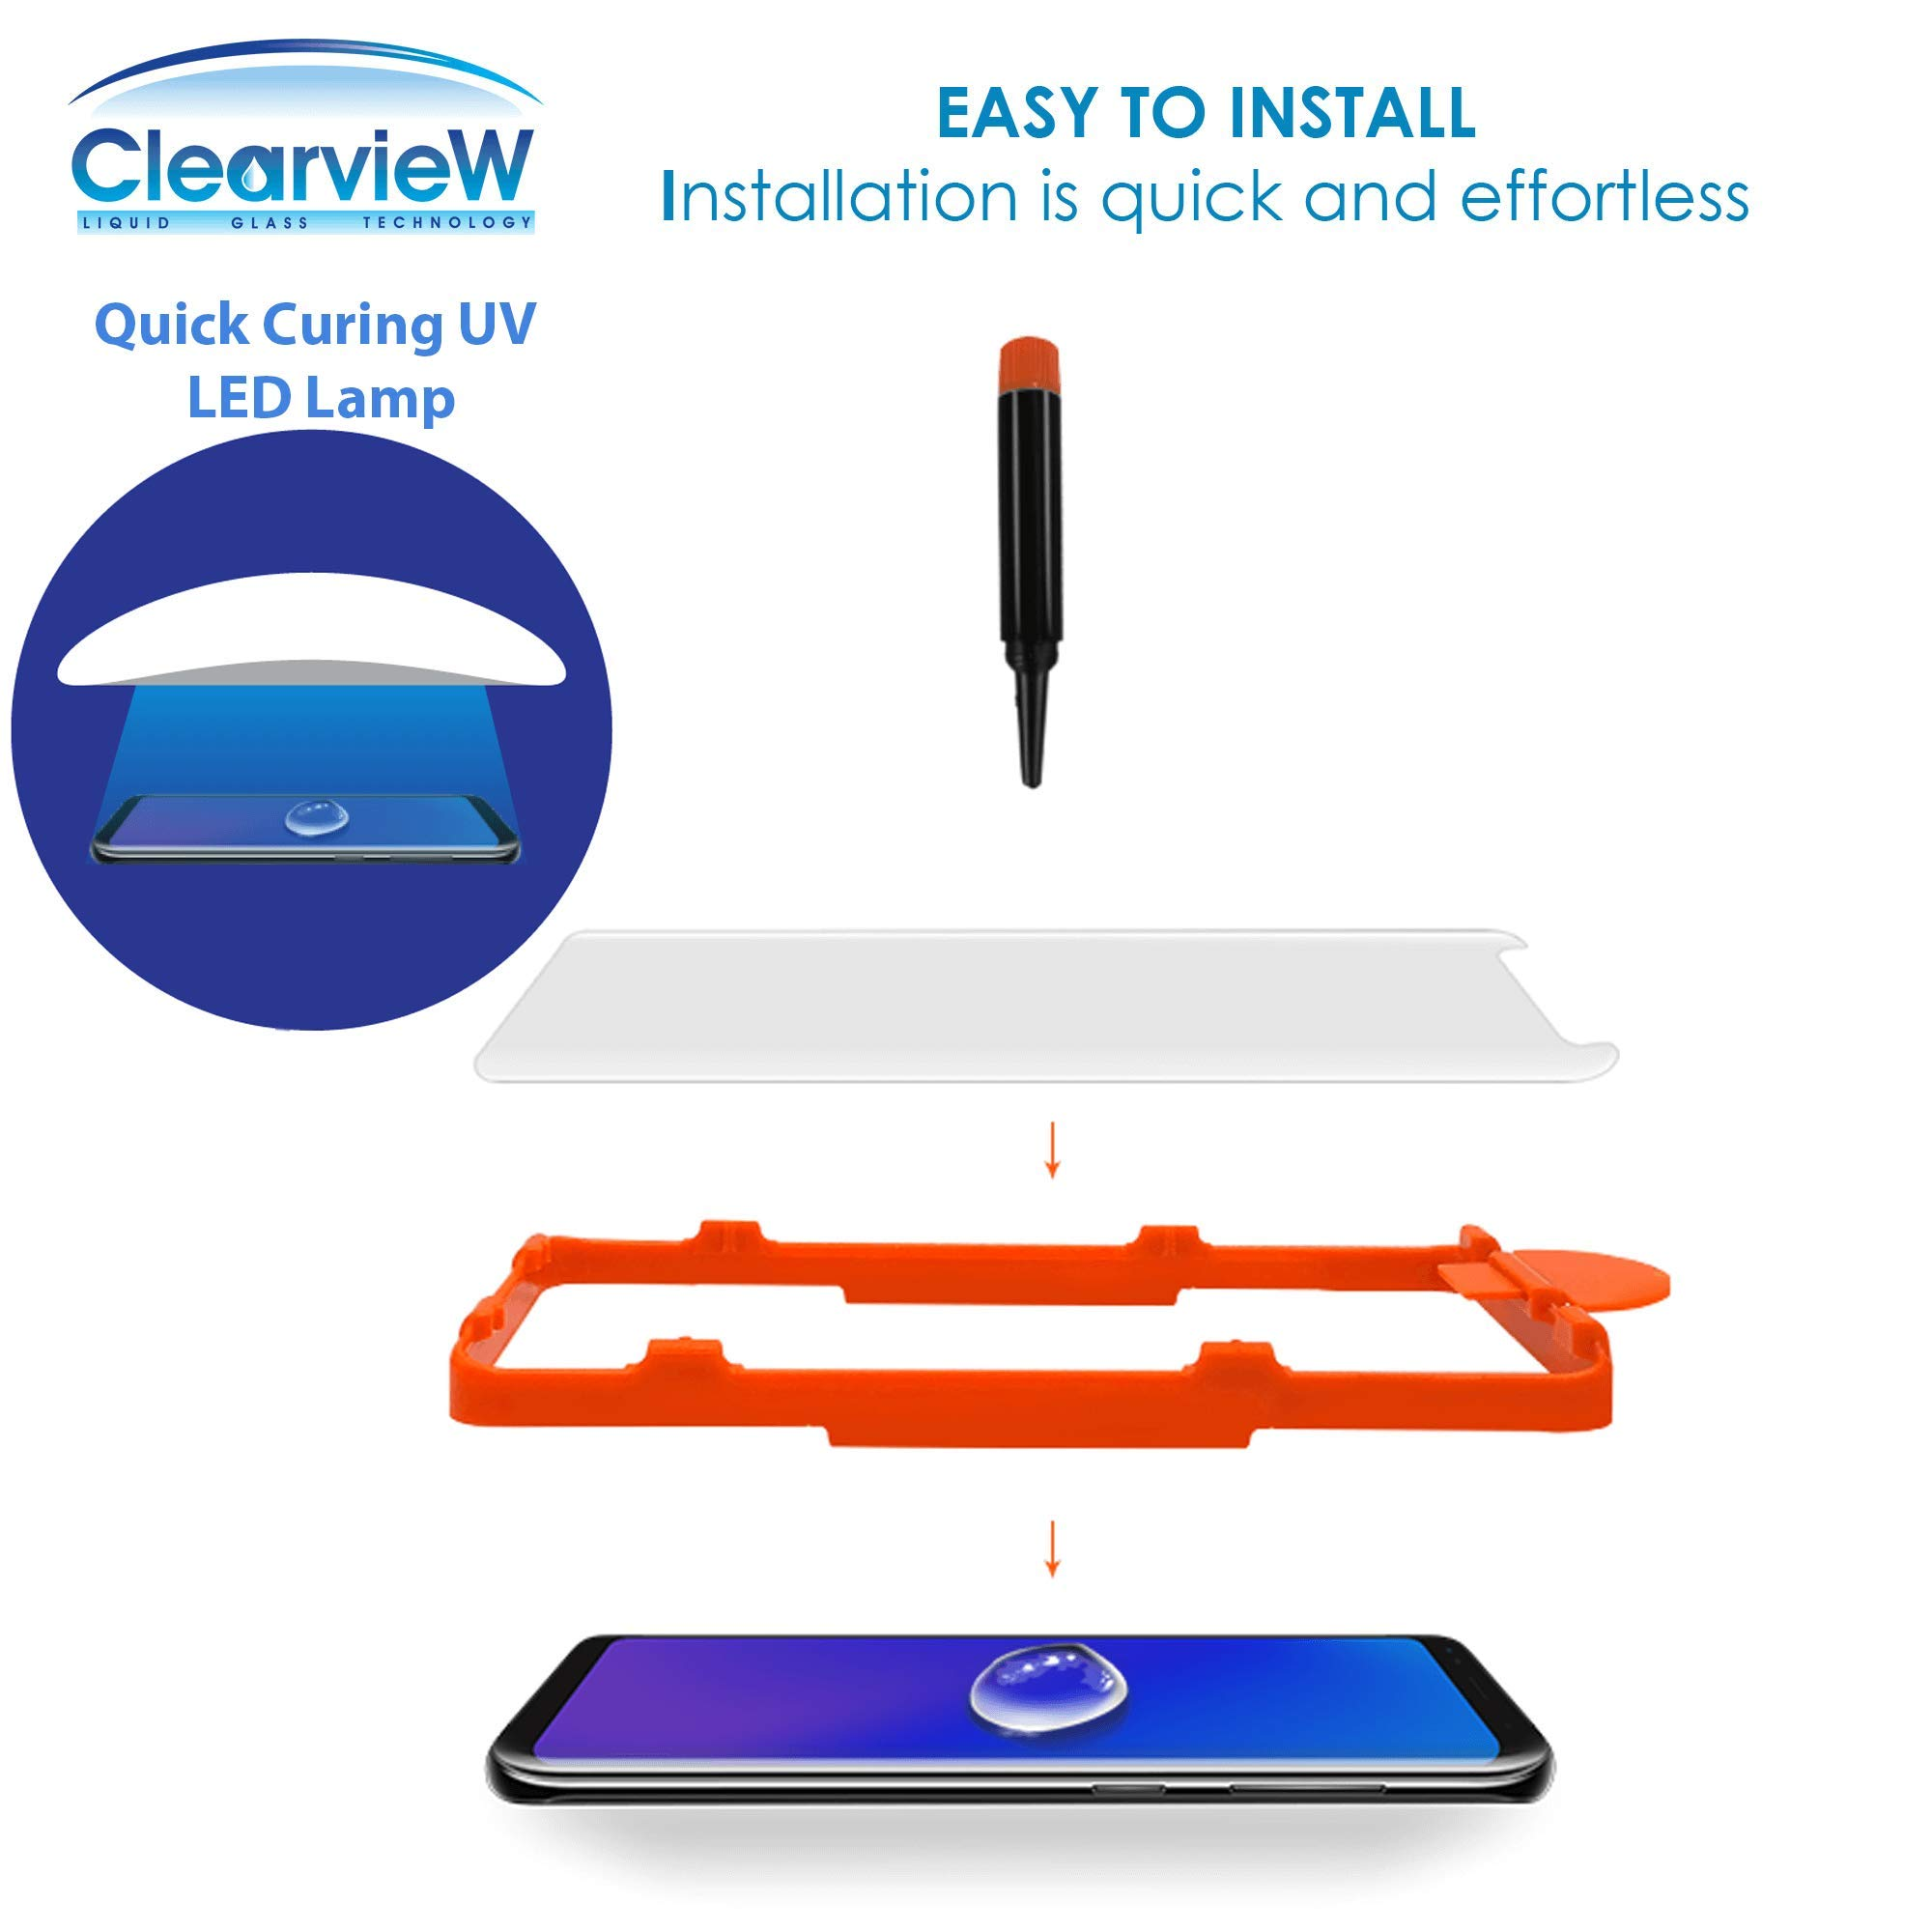 Clearview Samsung Galaxy S8 Liquid Tempered Glass Screen Protector - 9H Ultra Clear HD Japanese Glass, Full Screen Edge Coverage, Easy Install, Loca UV Light, Case Friendly (Full Kit) by Clearview (Image #5)